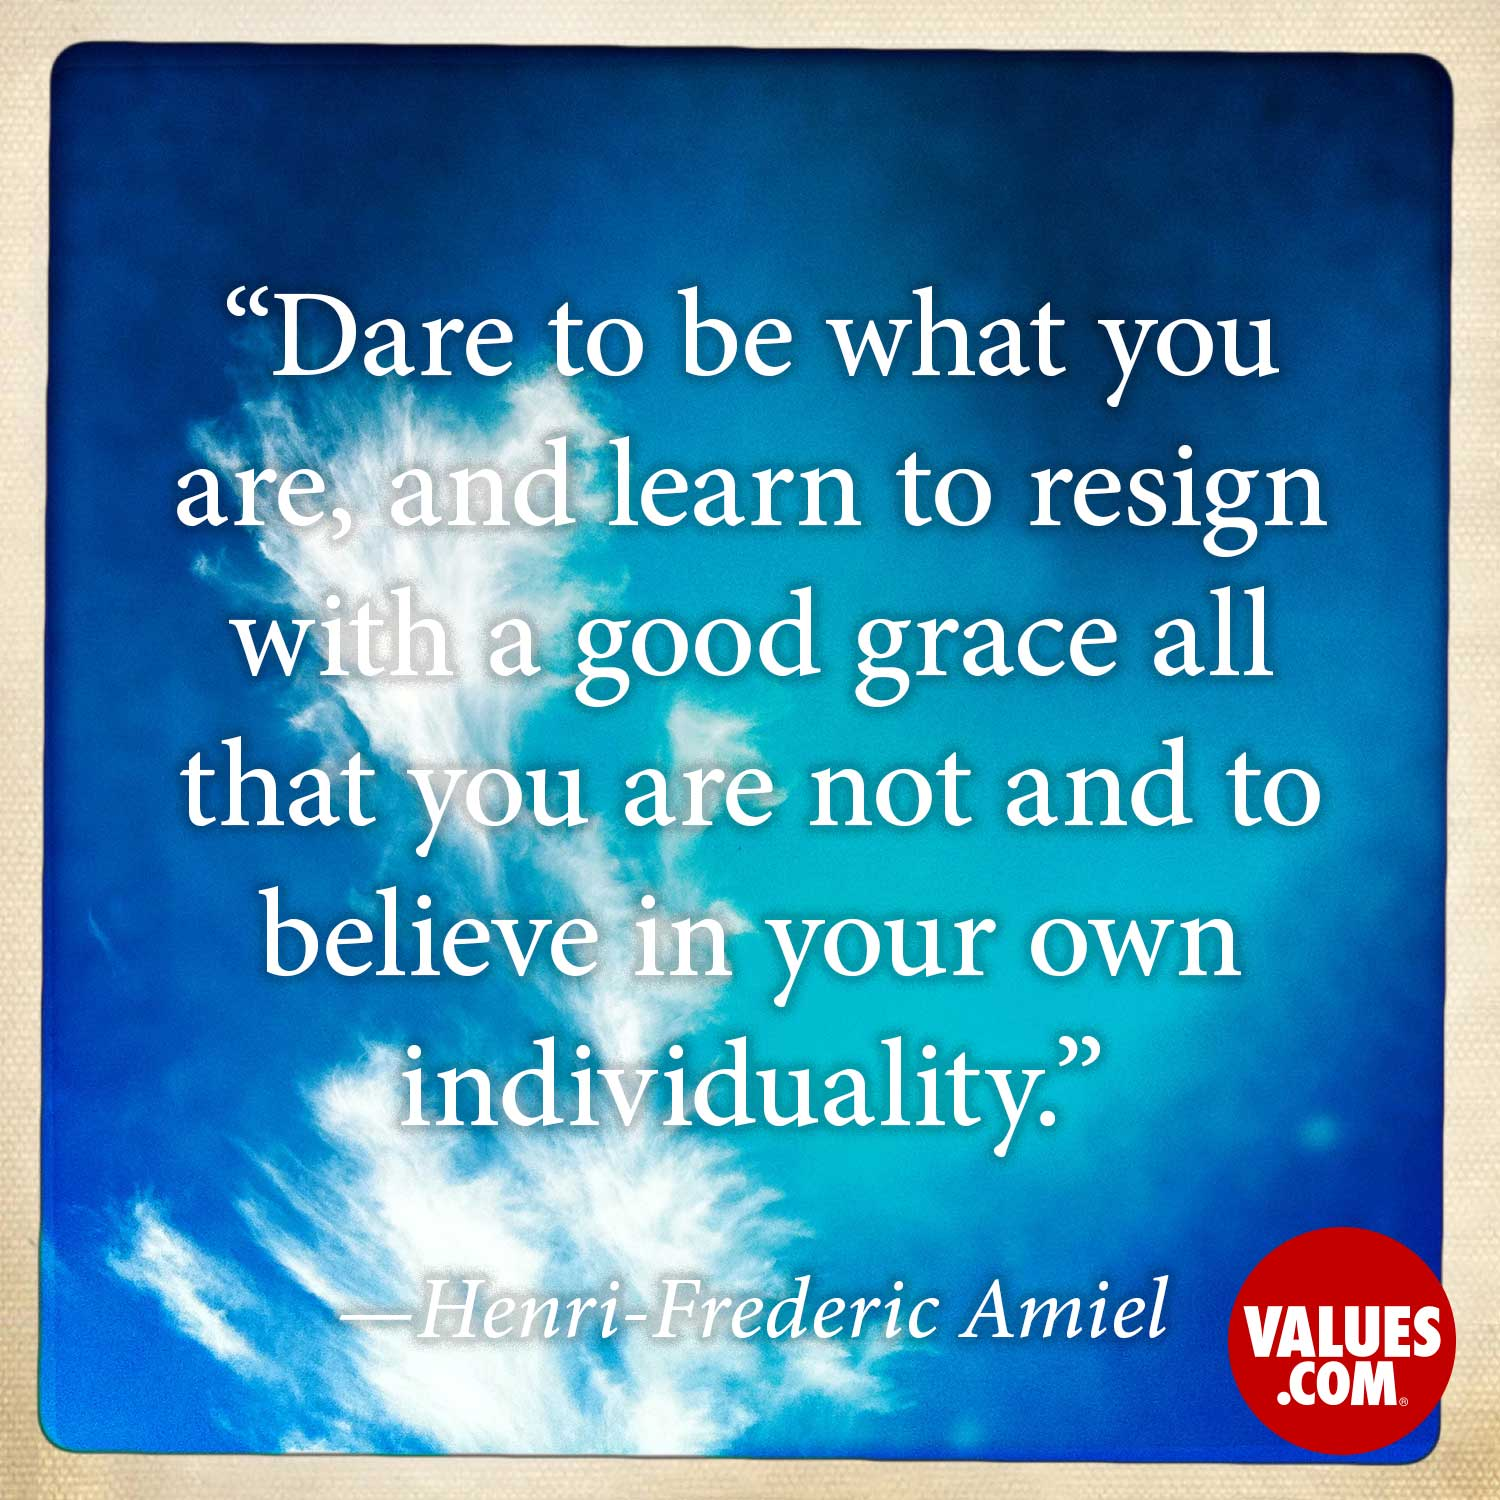 Dare to be what you are, and learn to resign with a good grace all that you are not and to believe in your own individuality. —Henri-Frédéric Amiel